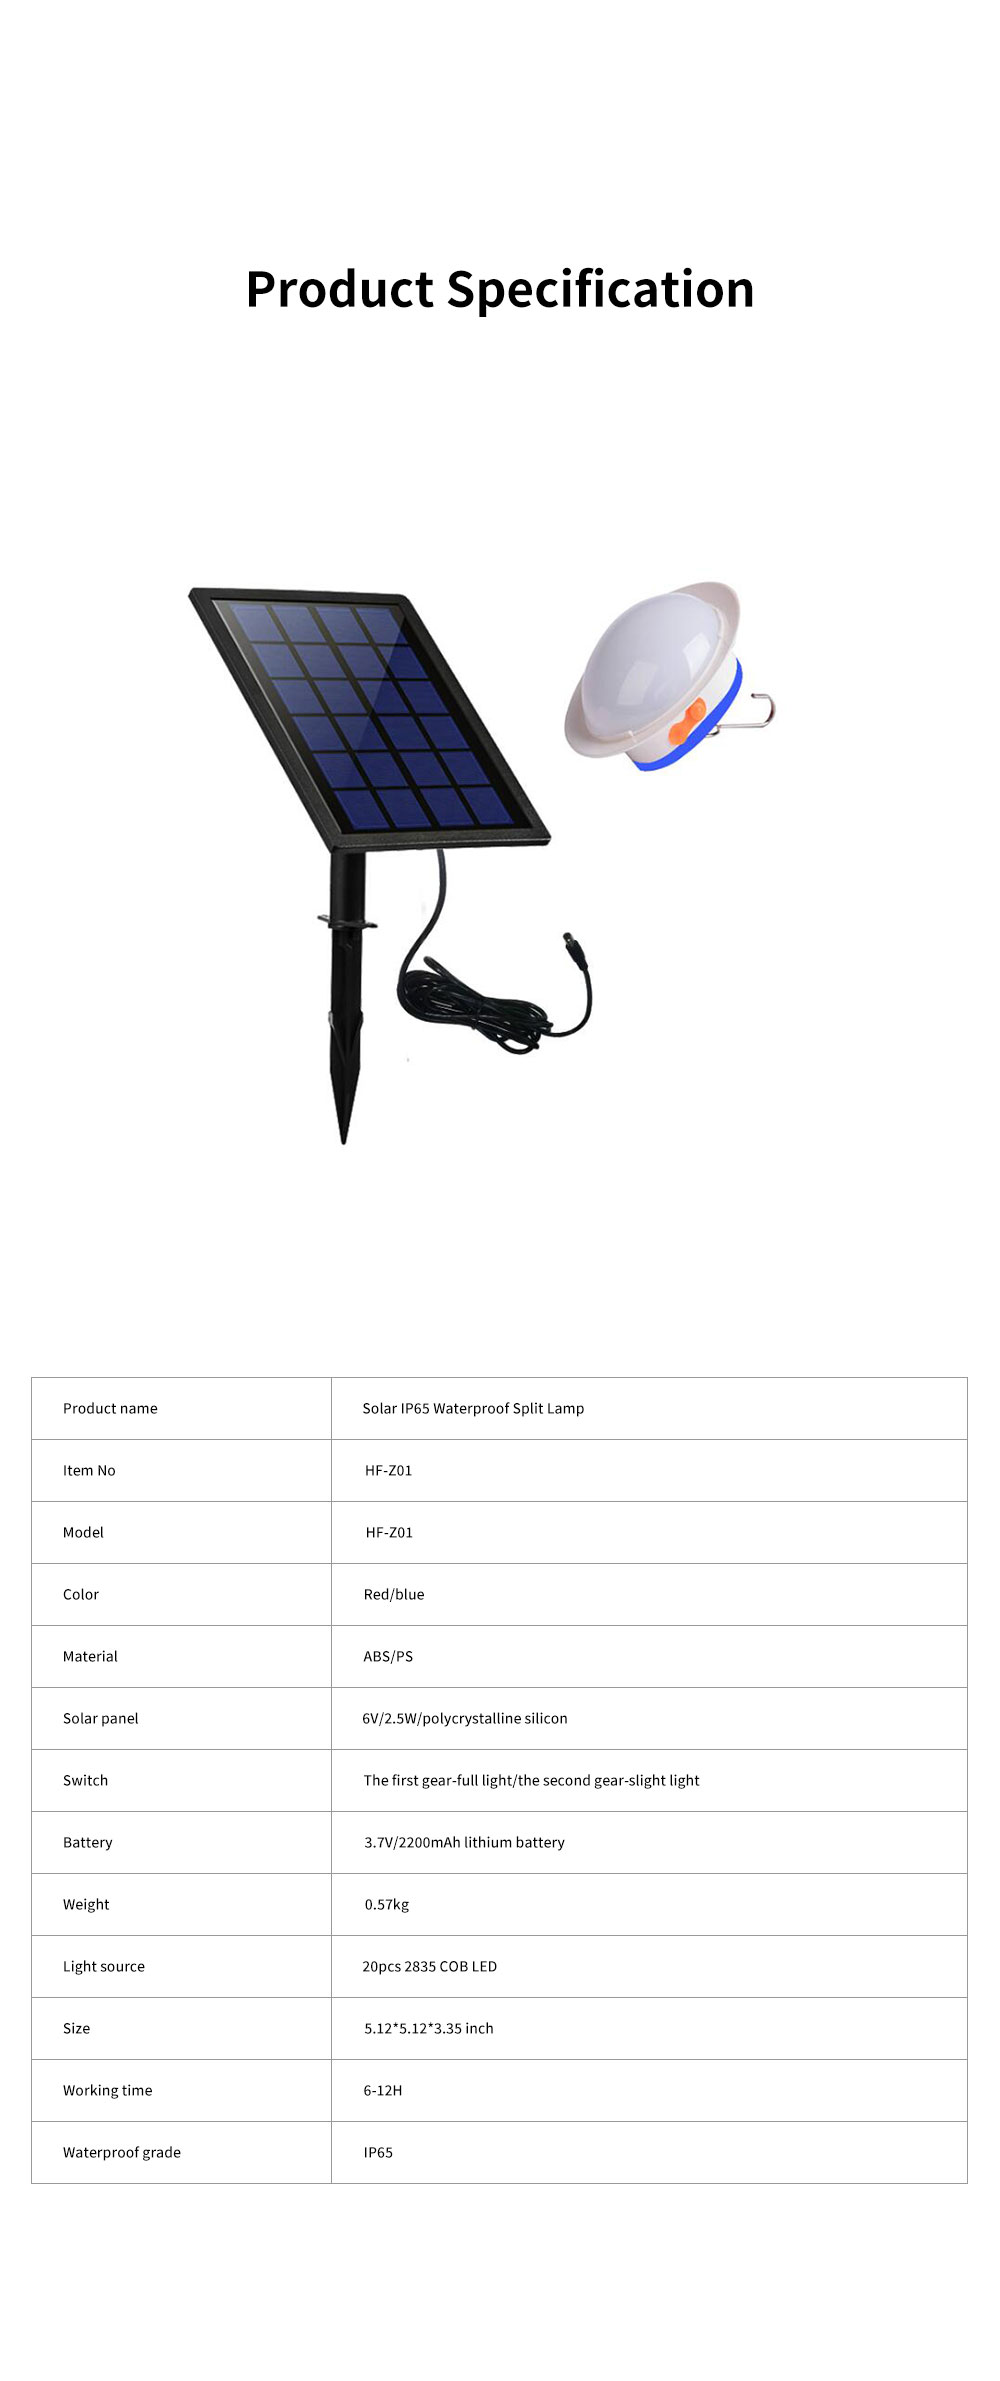 Solar IP65 Waterproof Split Lamp Outdoor Spotlight with 2200mAh Lithium Battery for Courtyard Lawn Wall Lighting 6